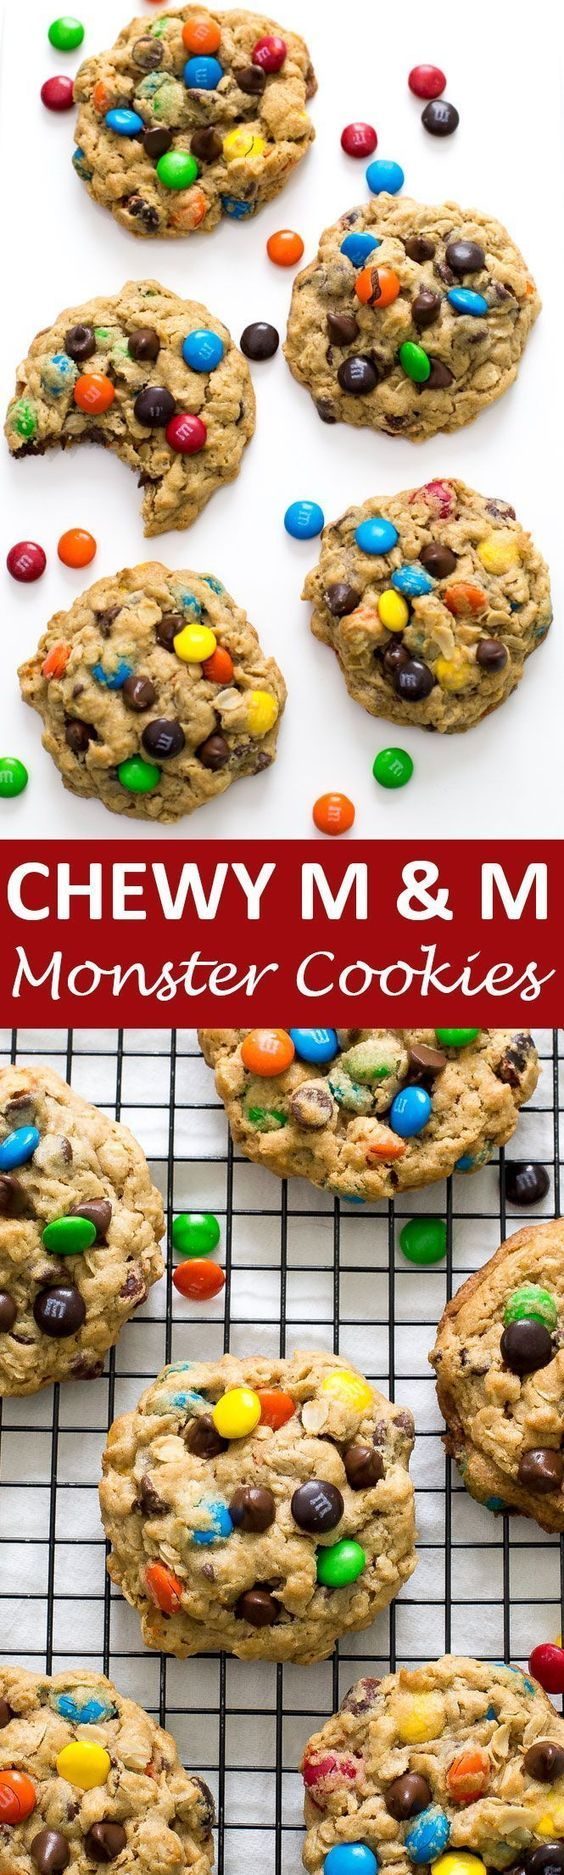 Thick and Chewy Monster M & M Cookies loaded with chocolate chips, M & Ms, peanut butter, and oats! They take only 20 minutes to make! | chefsavvy.com #recipe #chewy #peanut #butter #cookies #monster #dessert #m&m